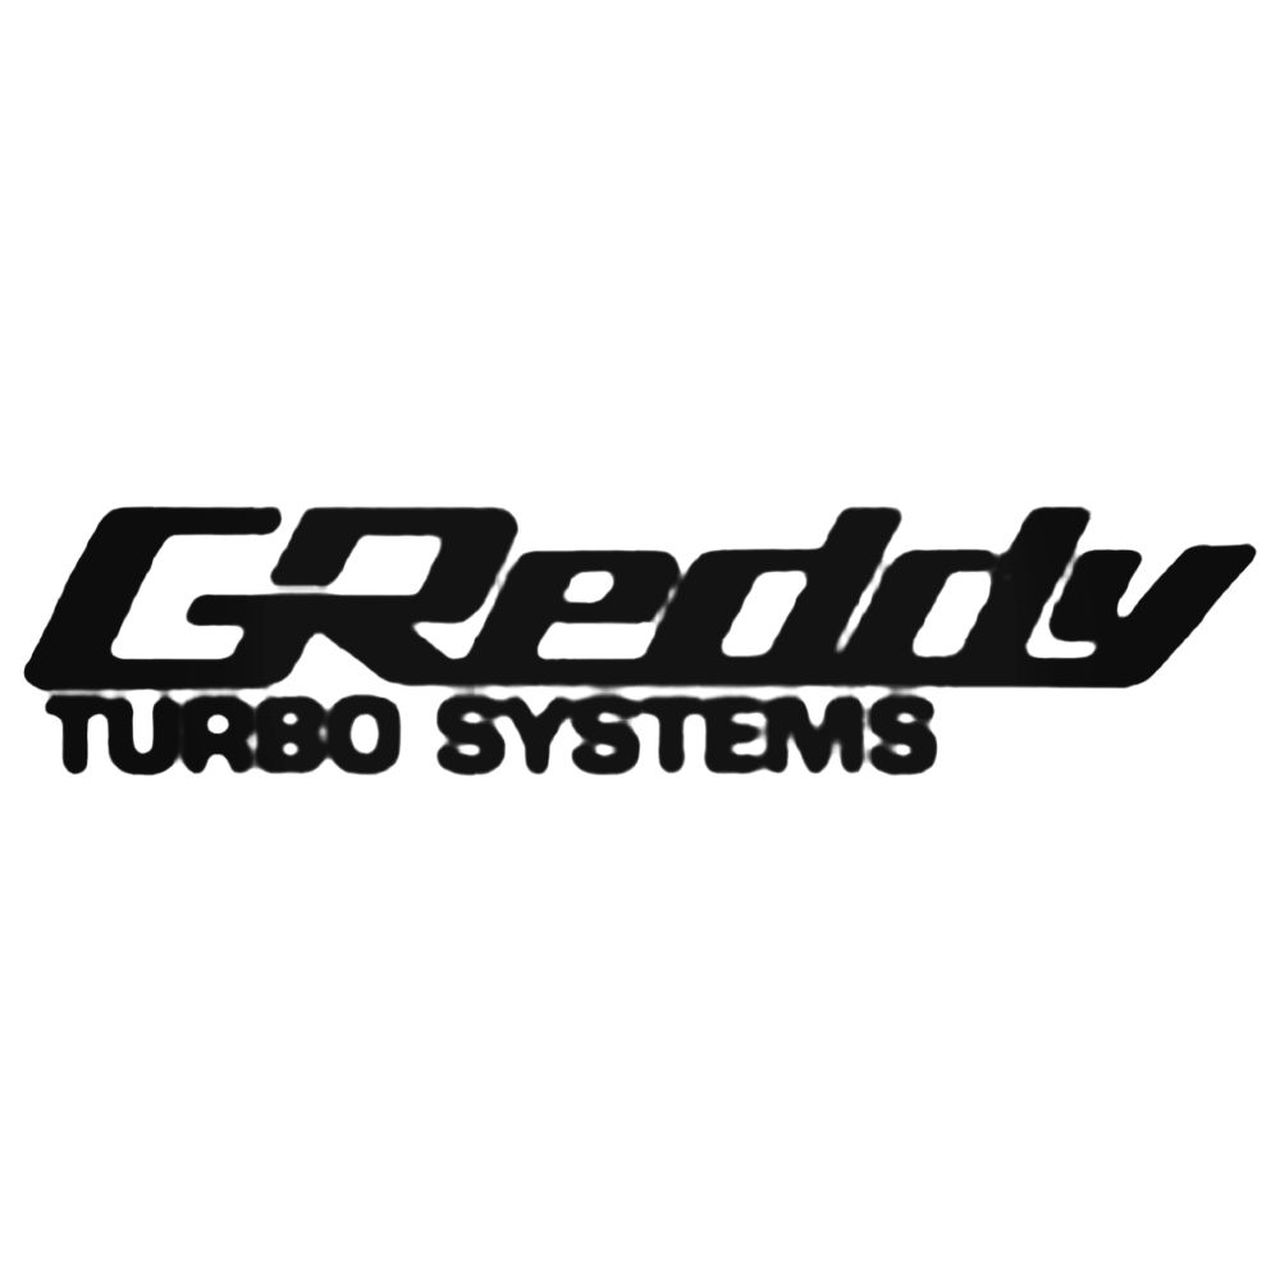 Performance Greddy Turbo Sytems Decal.